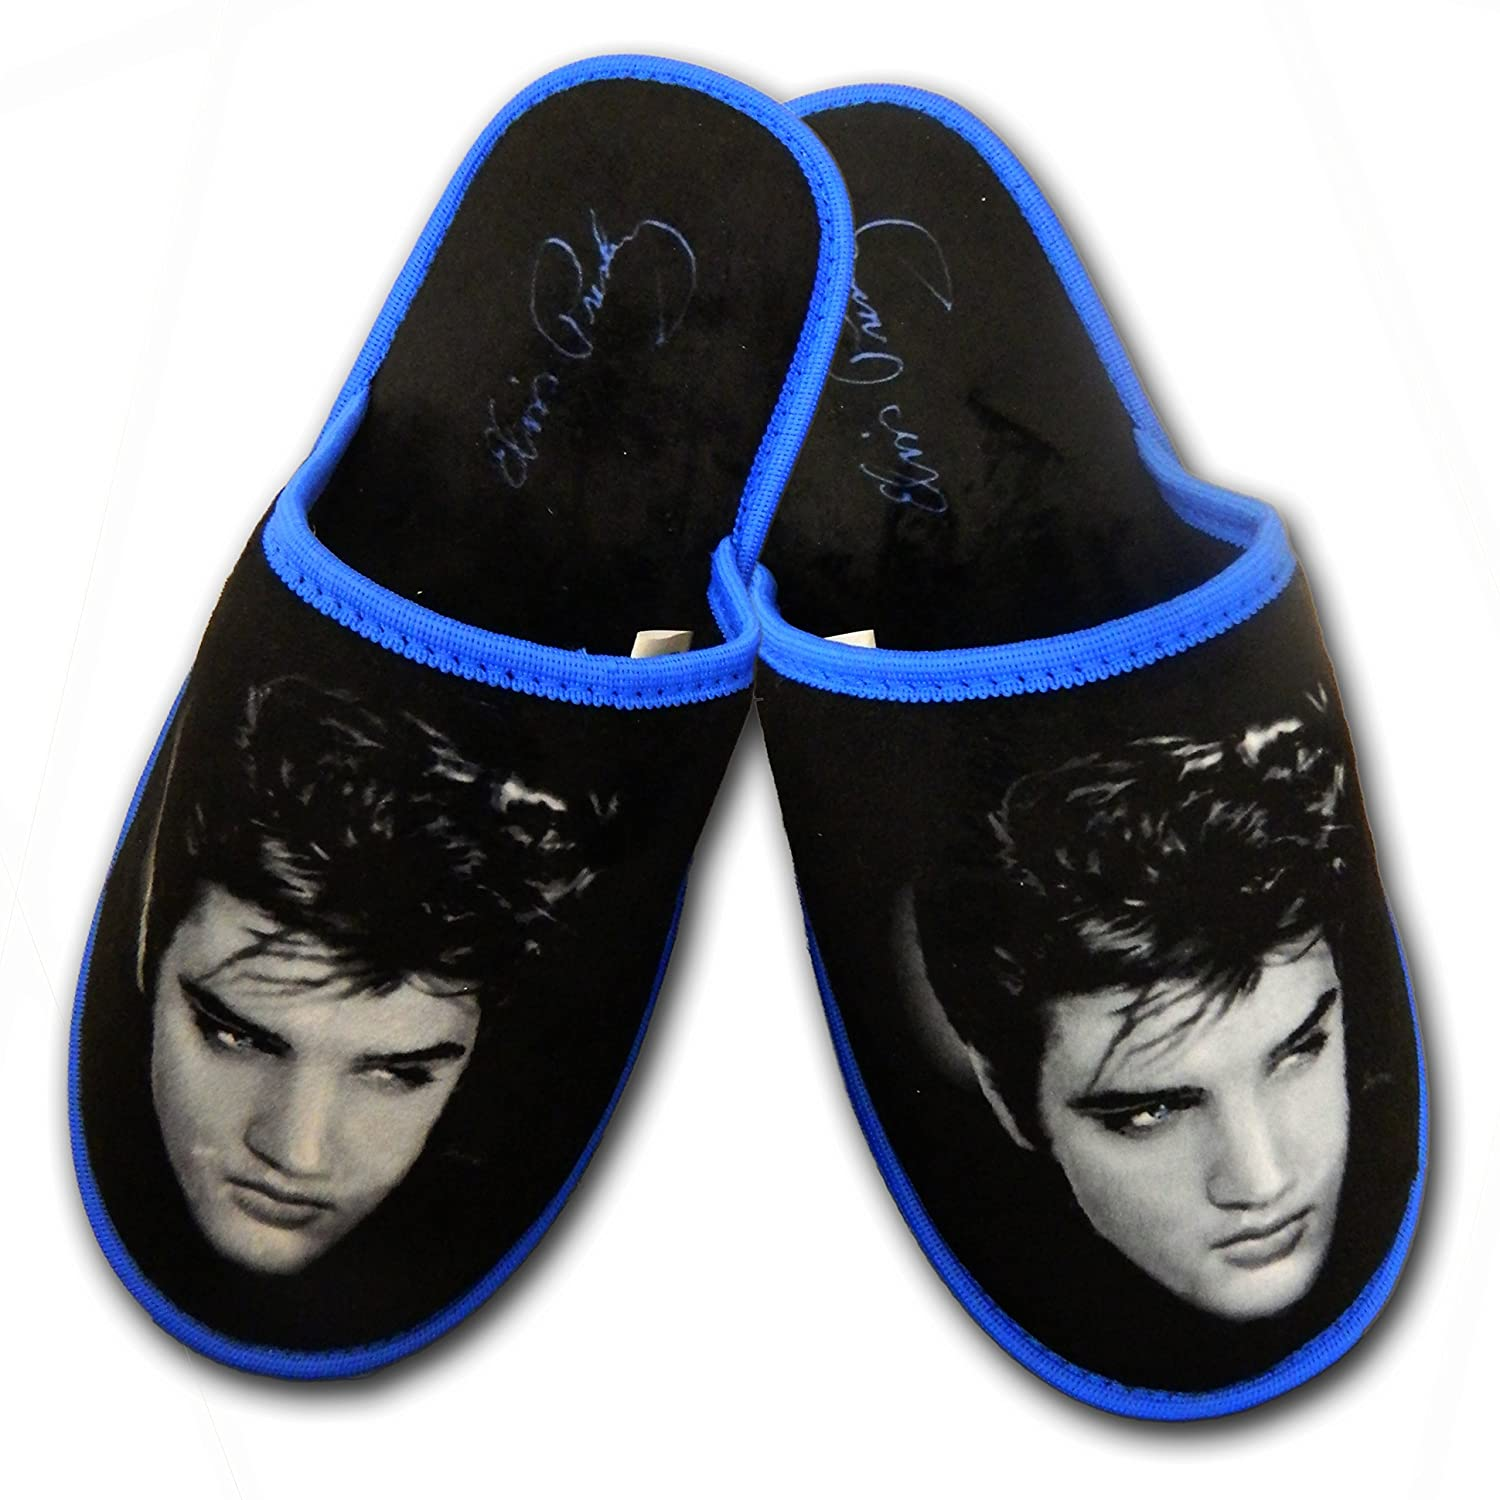 e76376422c2a1 Midsouth Products Elvis Presley Slippers - Up Close